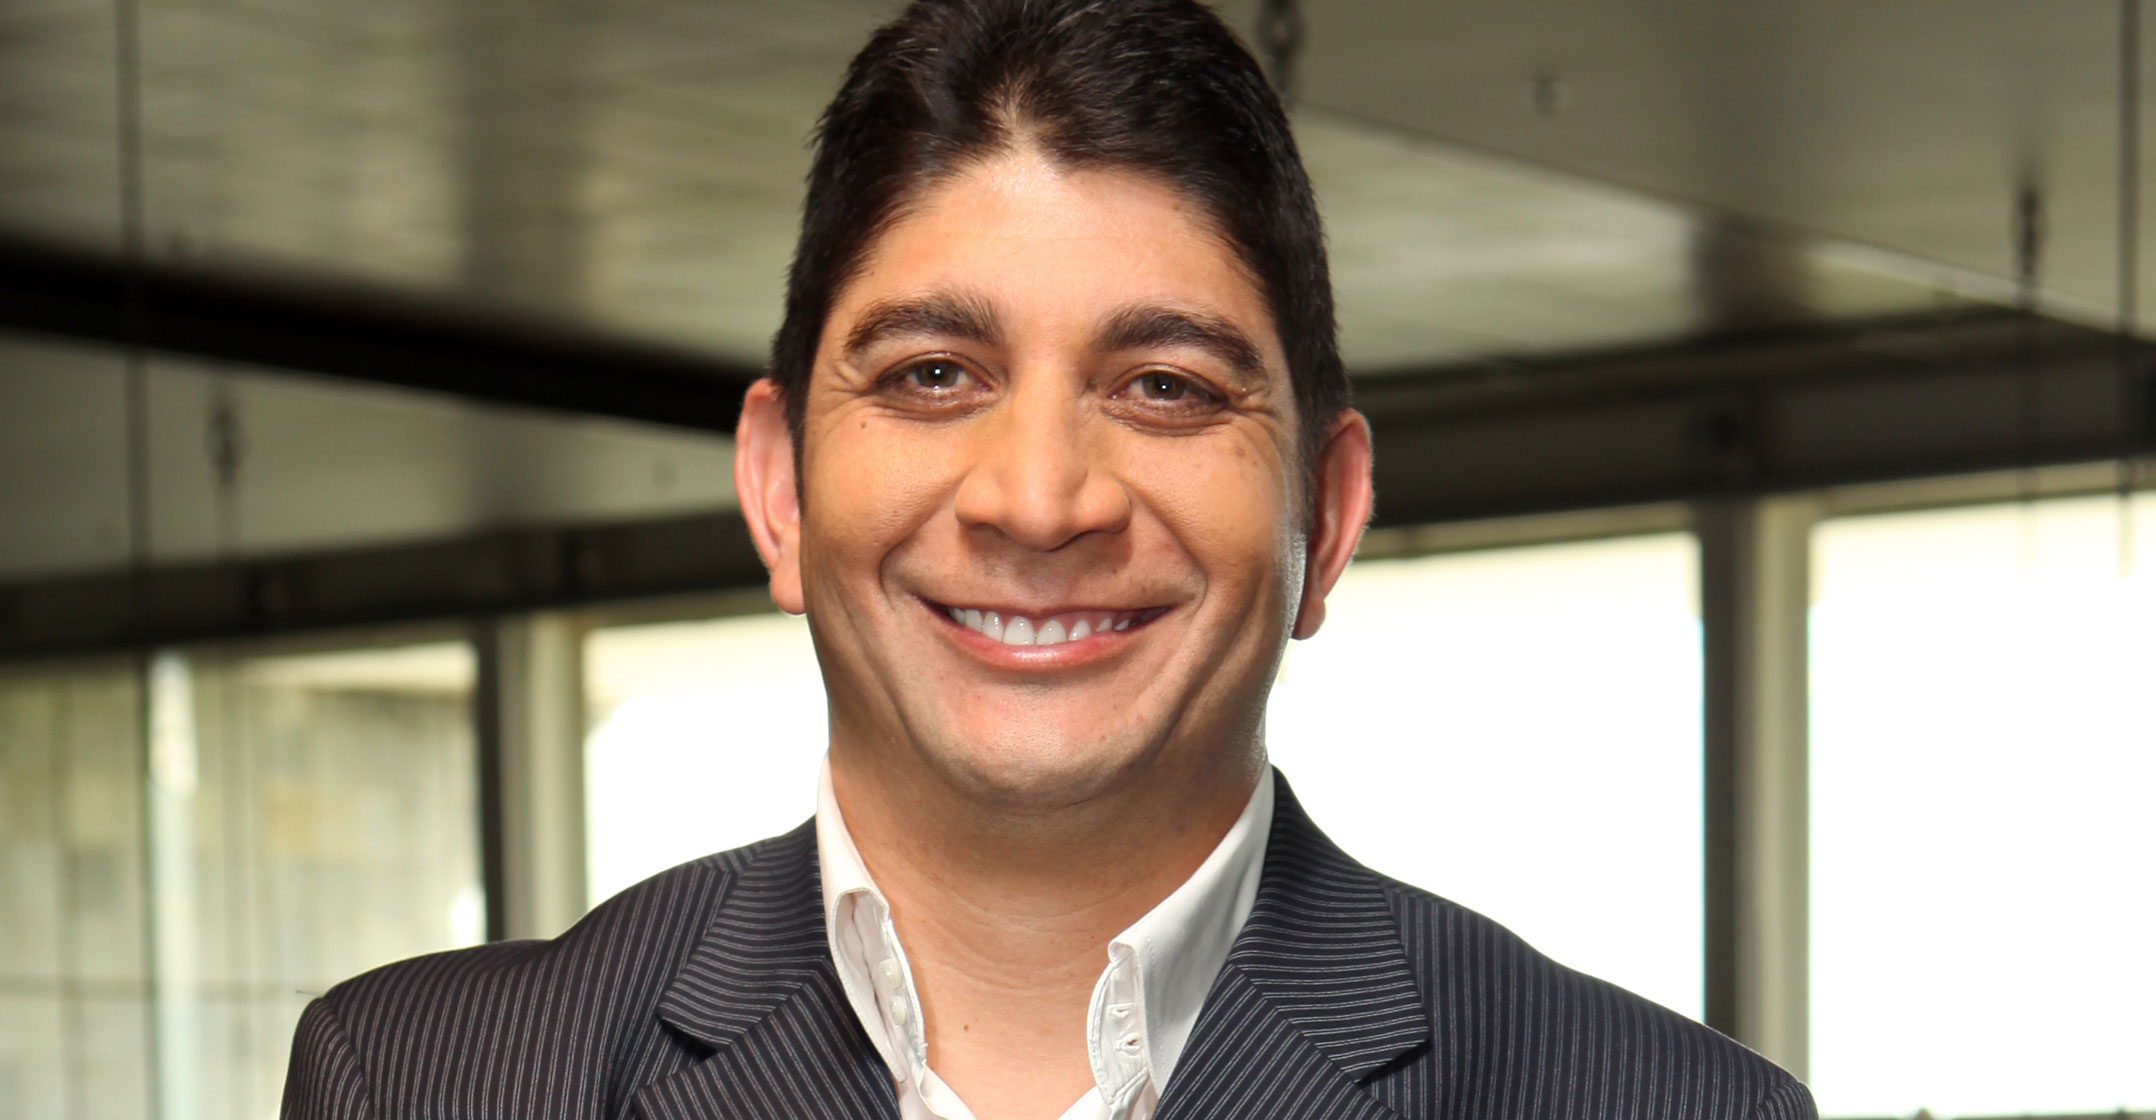 Vodacom adds 2.3 million SA customers as quarterly revenue soars